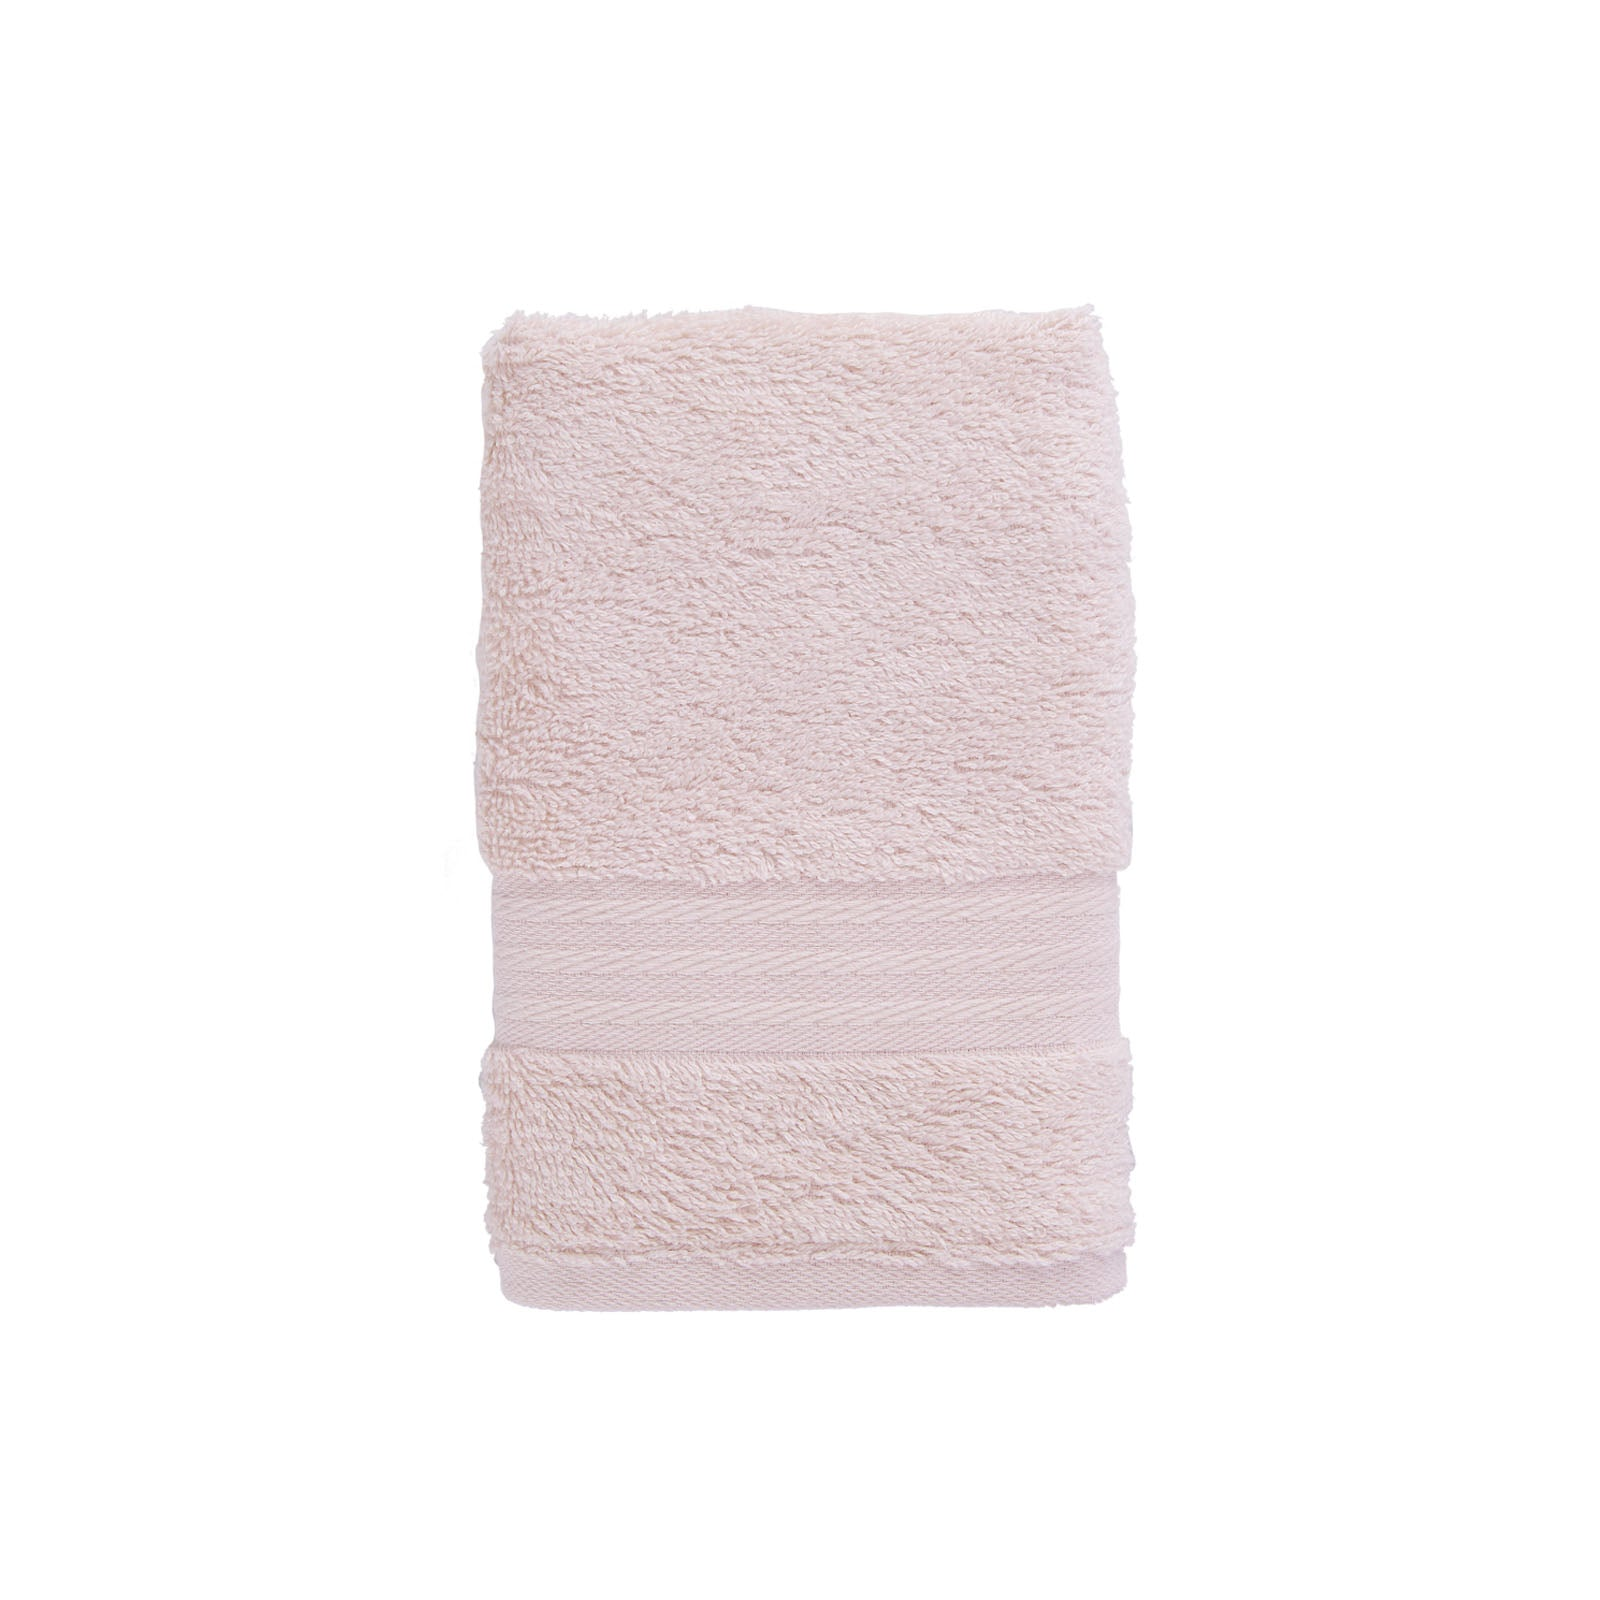 30X50 PURE SOFT towel   200.05.01.0227 - ebarza